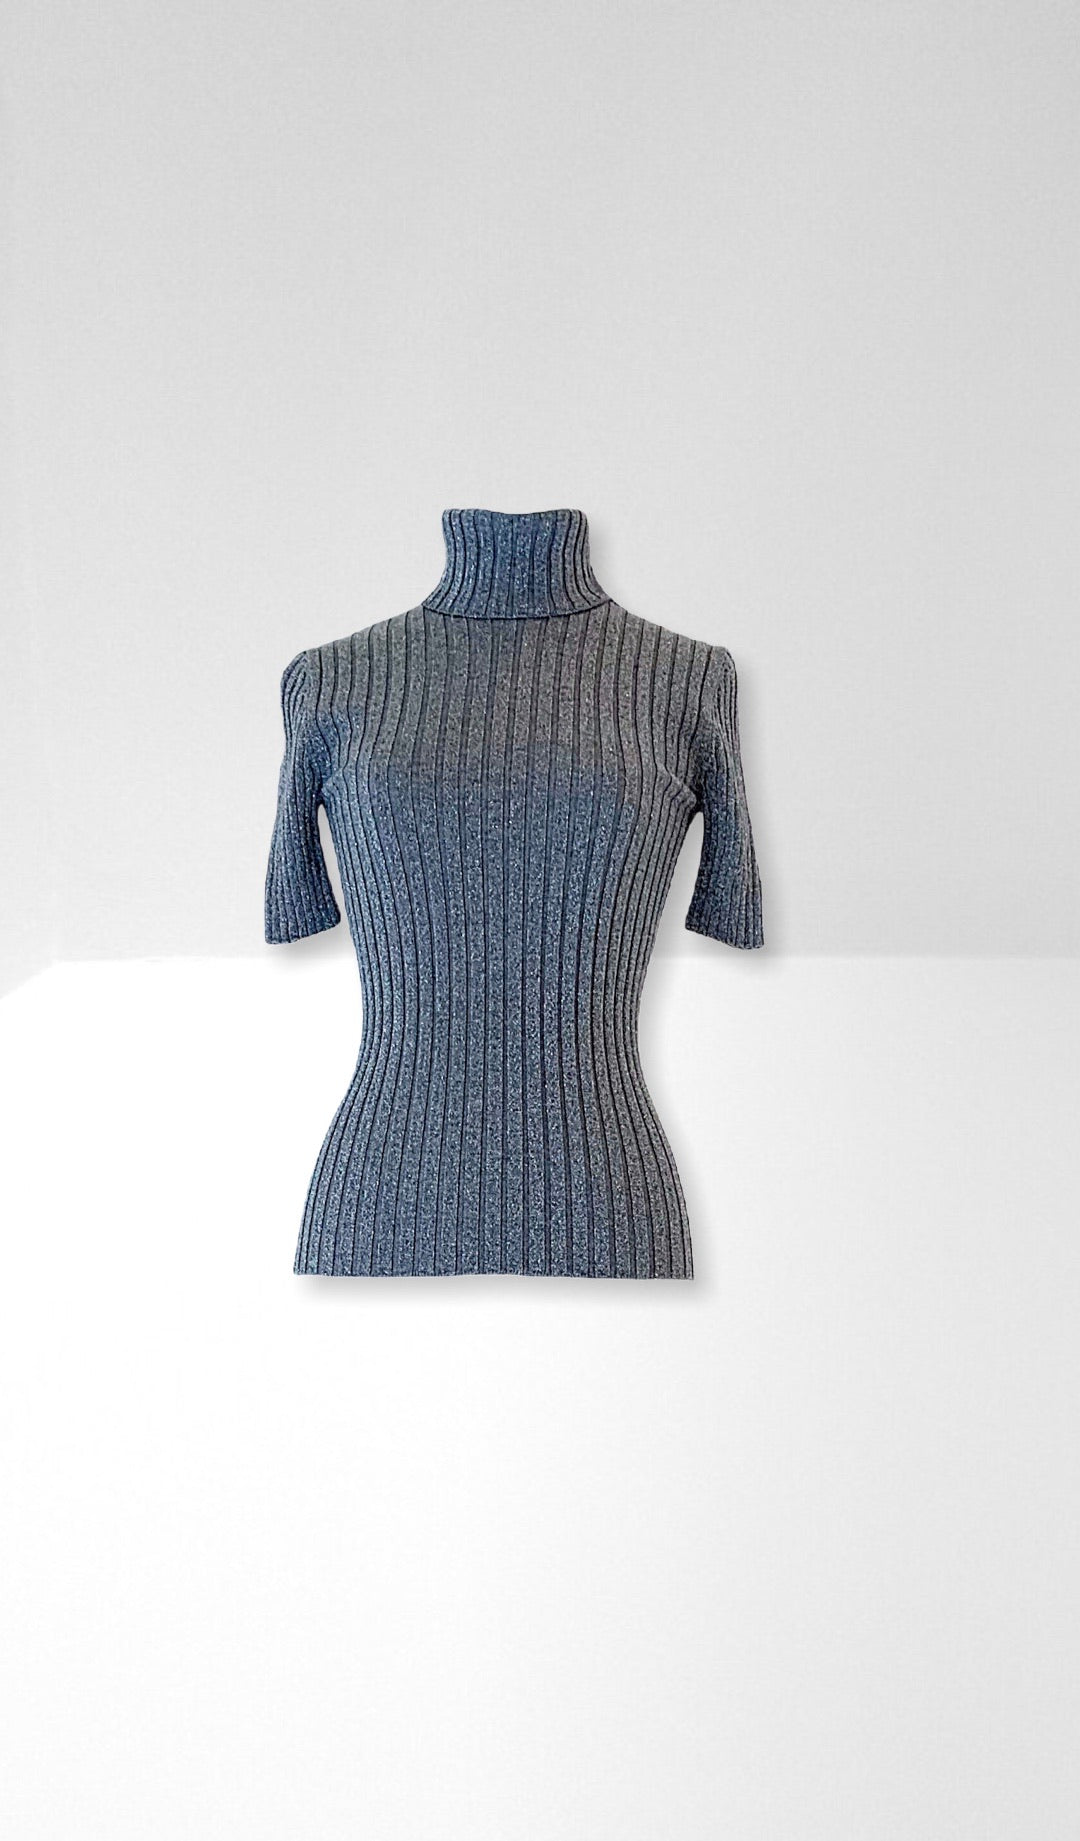 Silver grey roll neck knit top